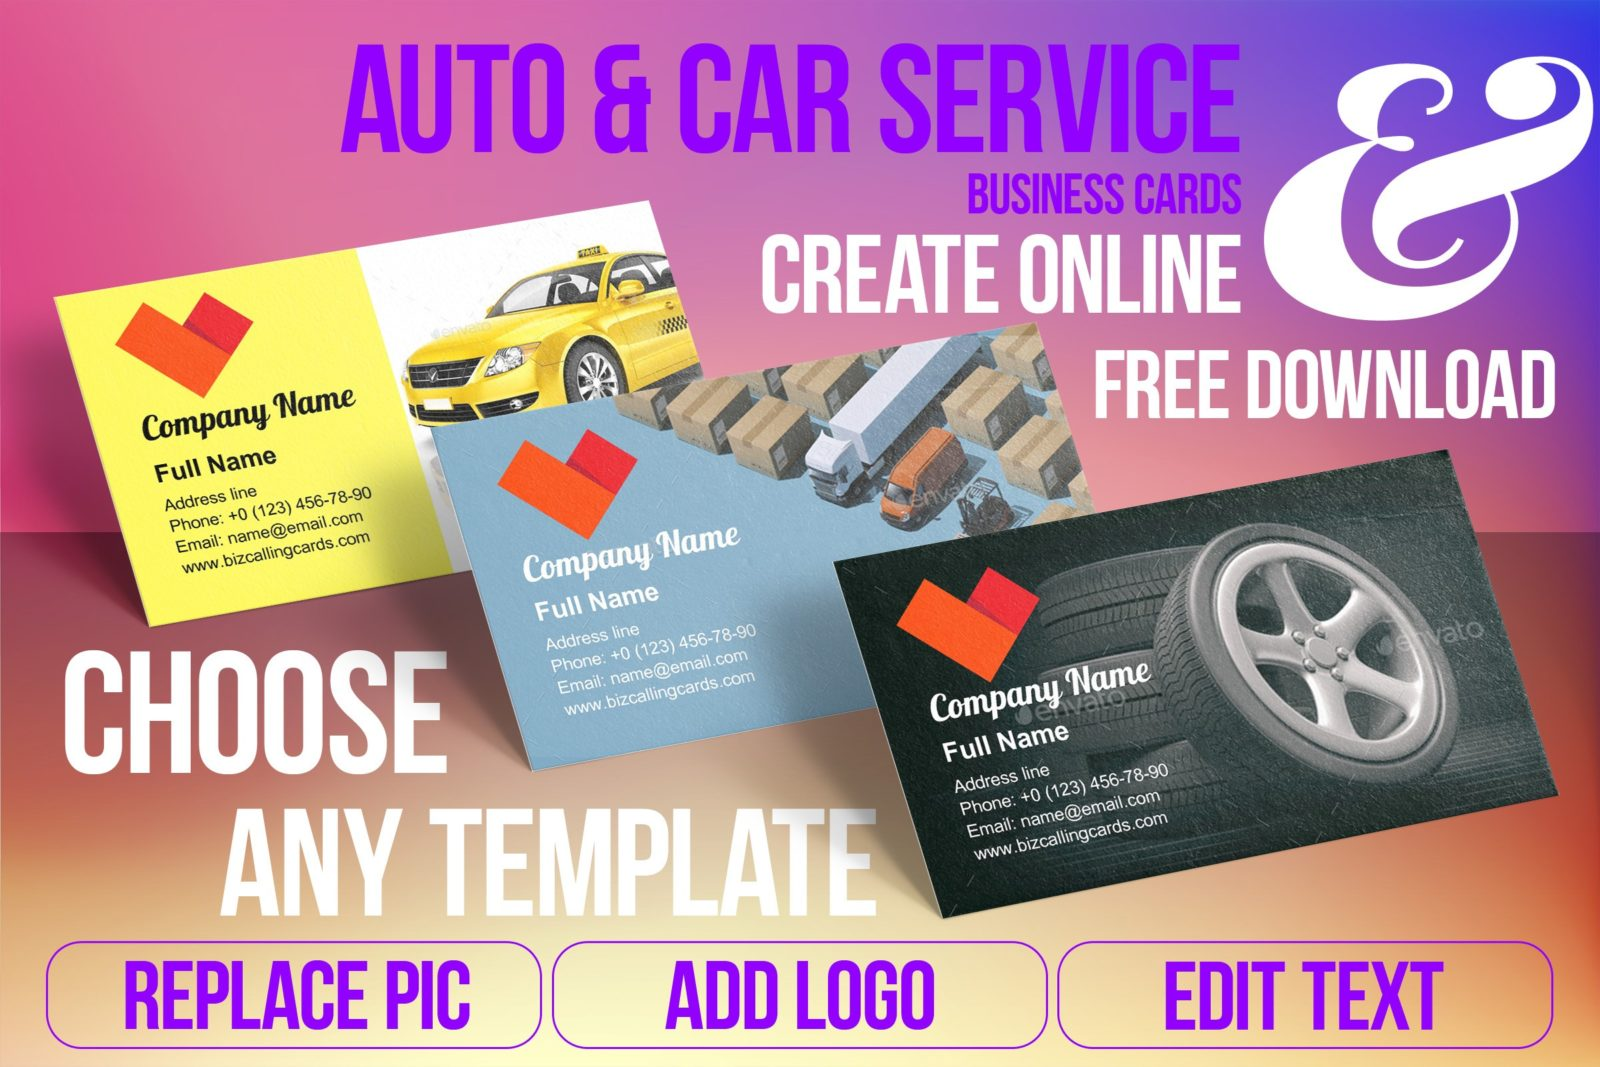 Business Card Templates For Auto & Car Service Free Download